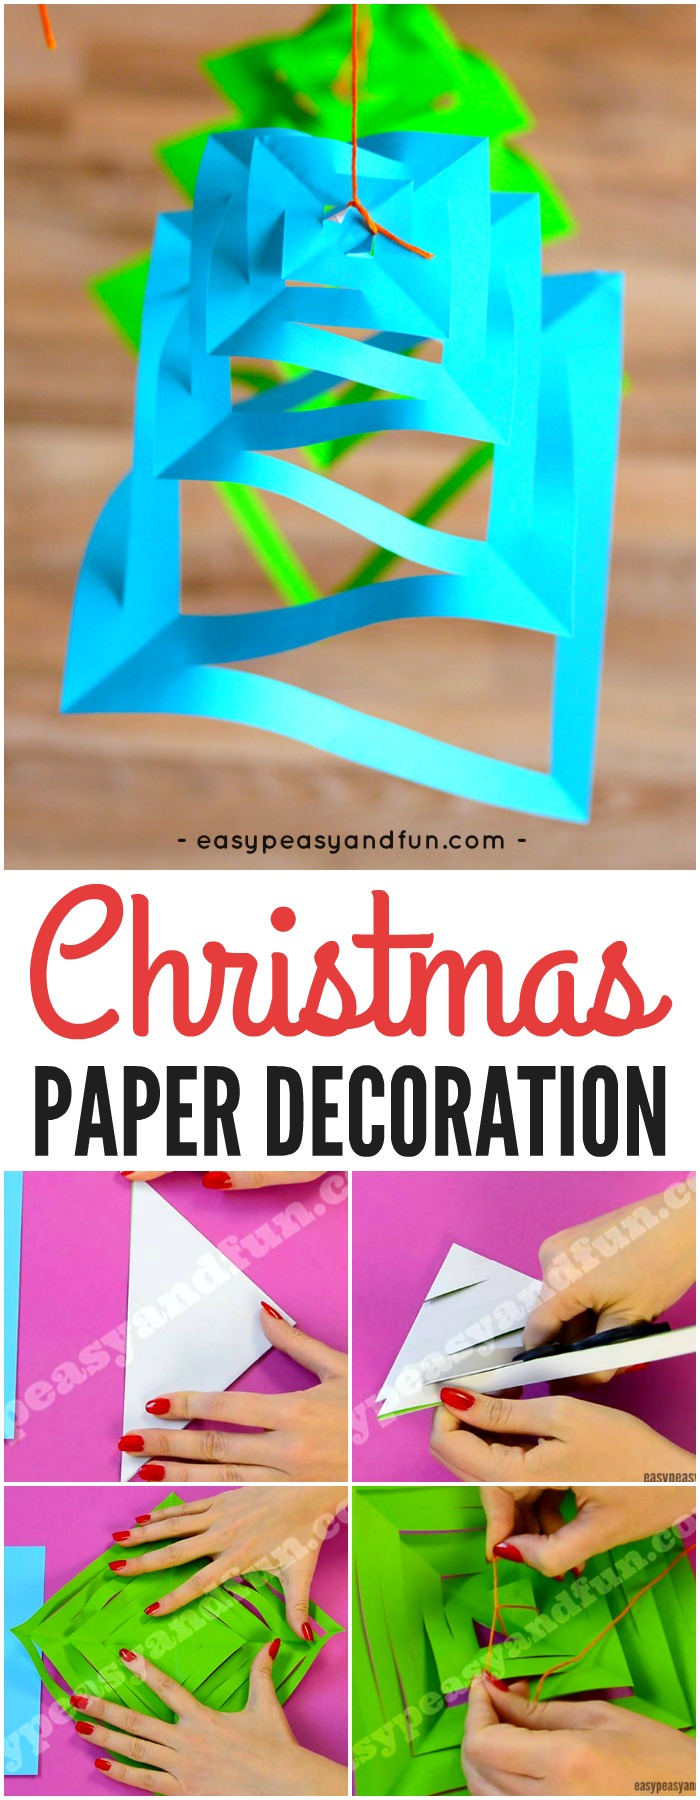 Simple Paper Christmas Decorations Craft for Kids. Fun Christmas paper craft for kids to make. #Christmascraftsforkids #papercraftsforkids #craftsforkids